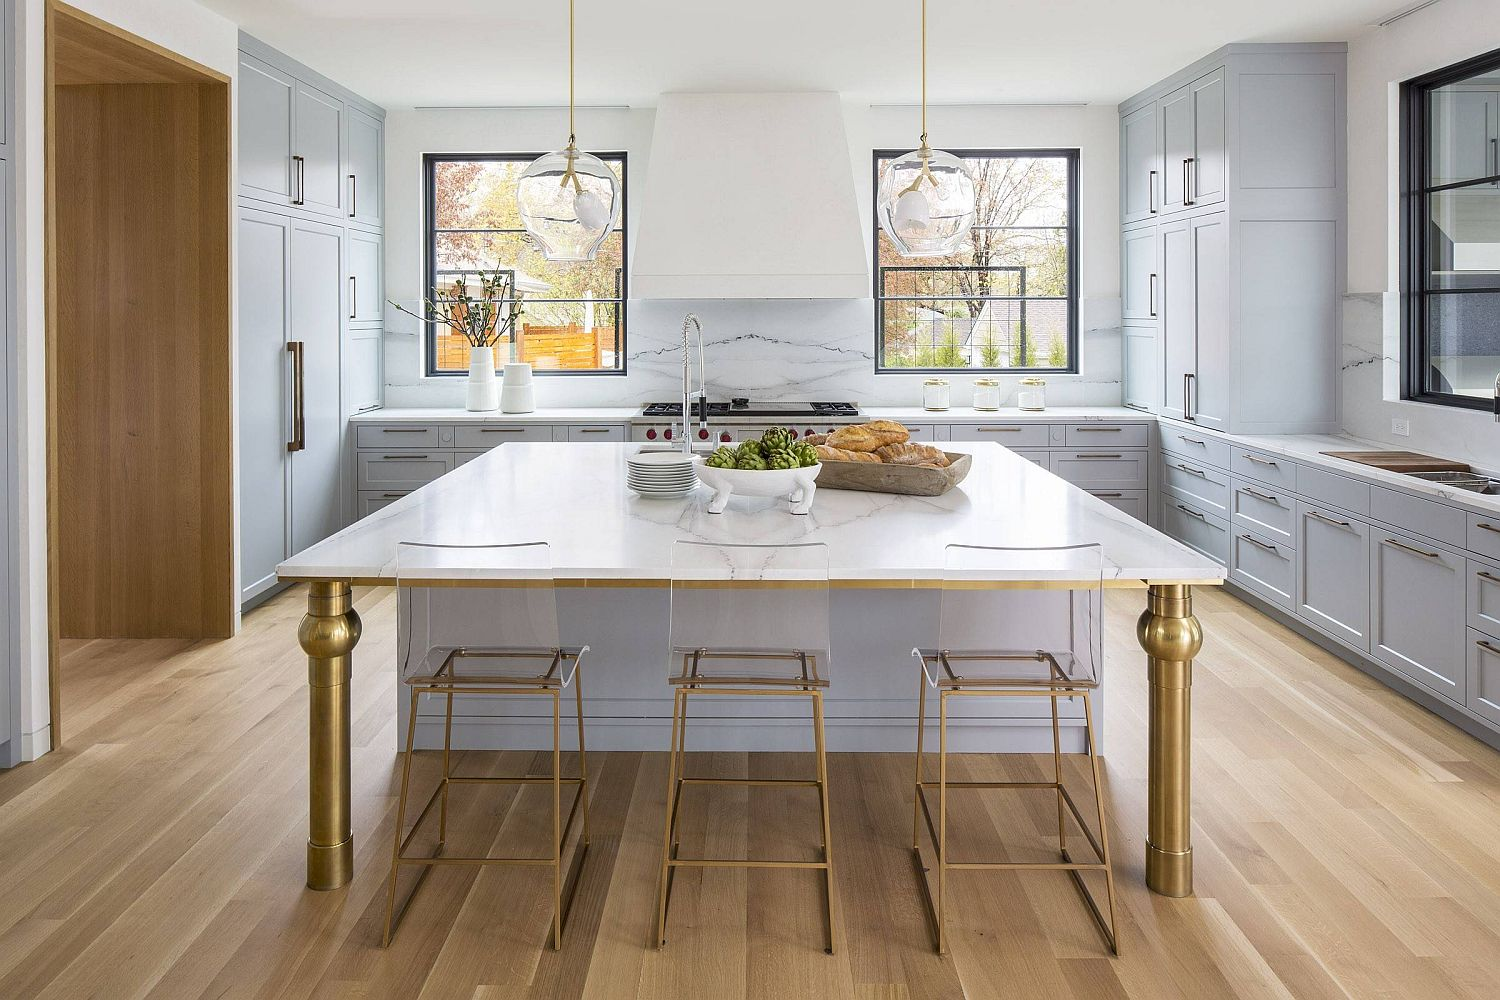 Custom-kitchen-island-in-acrylic-and-brass-for-the-modern-white-kitchen